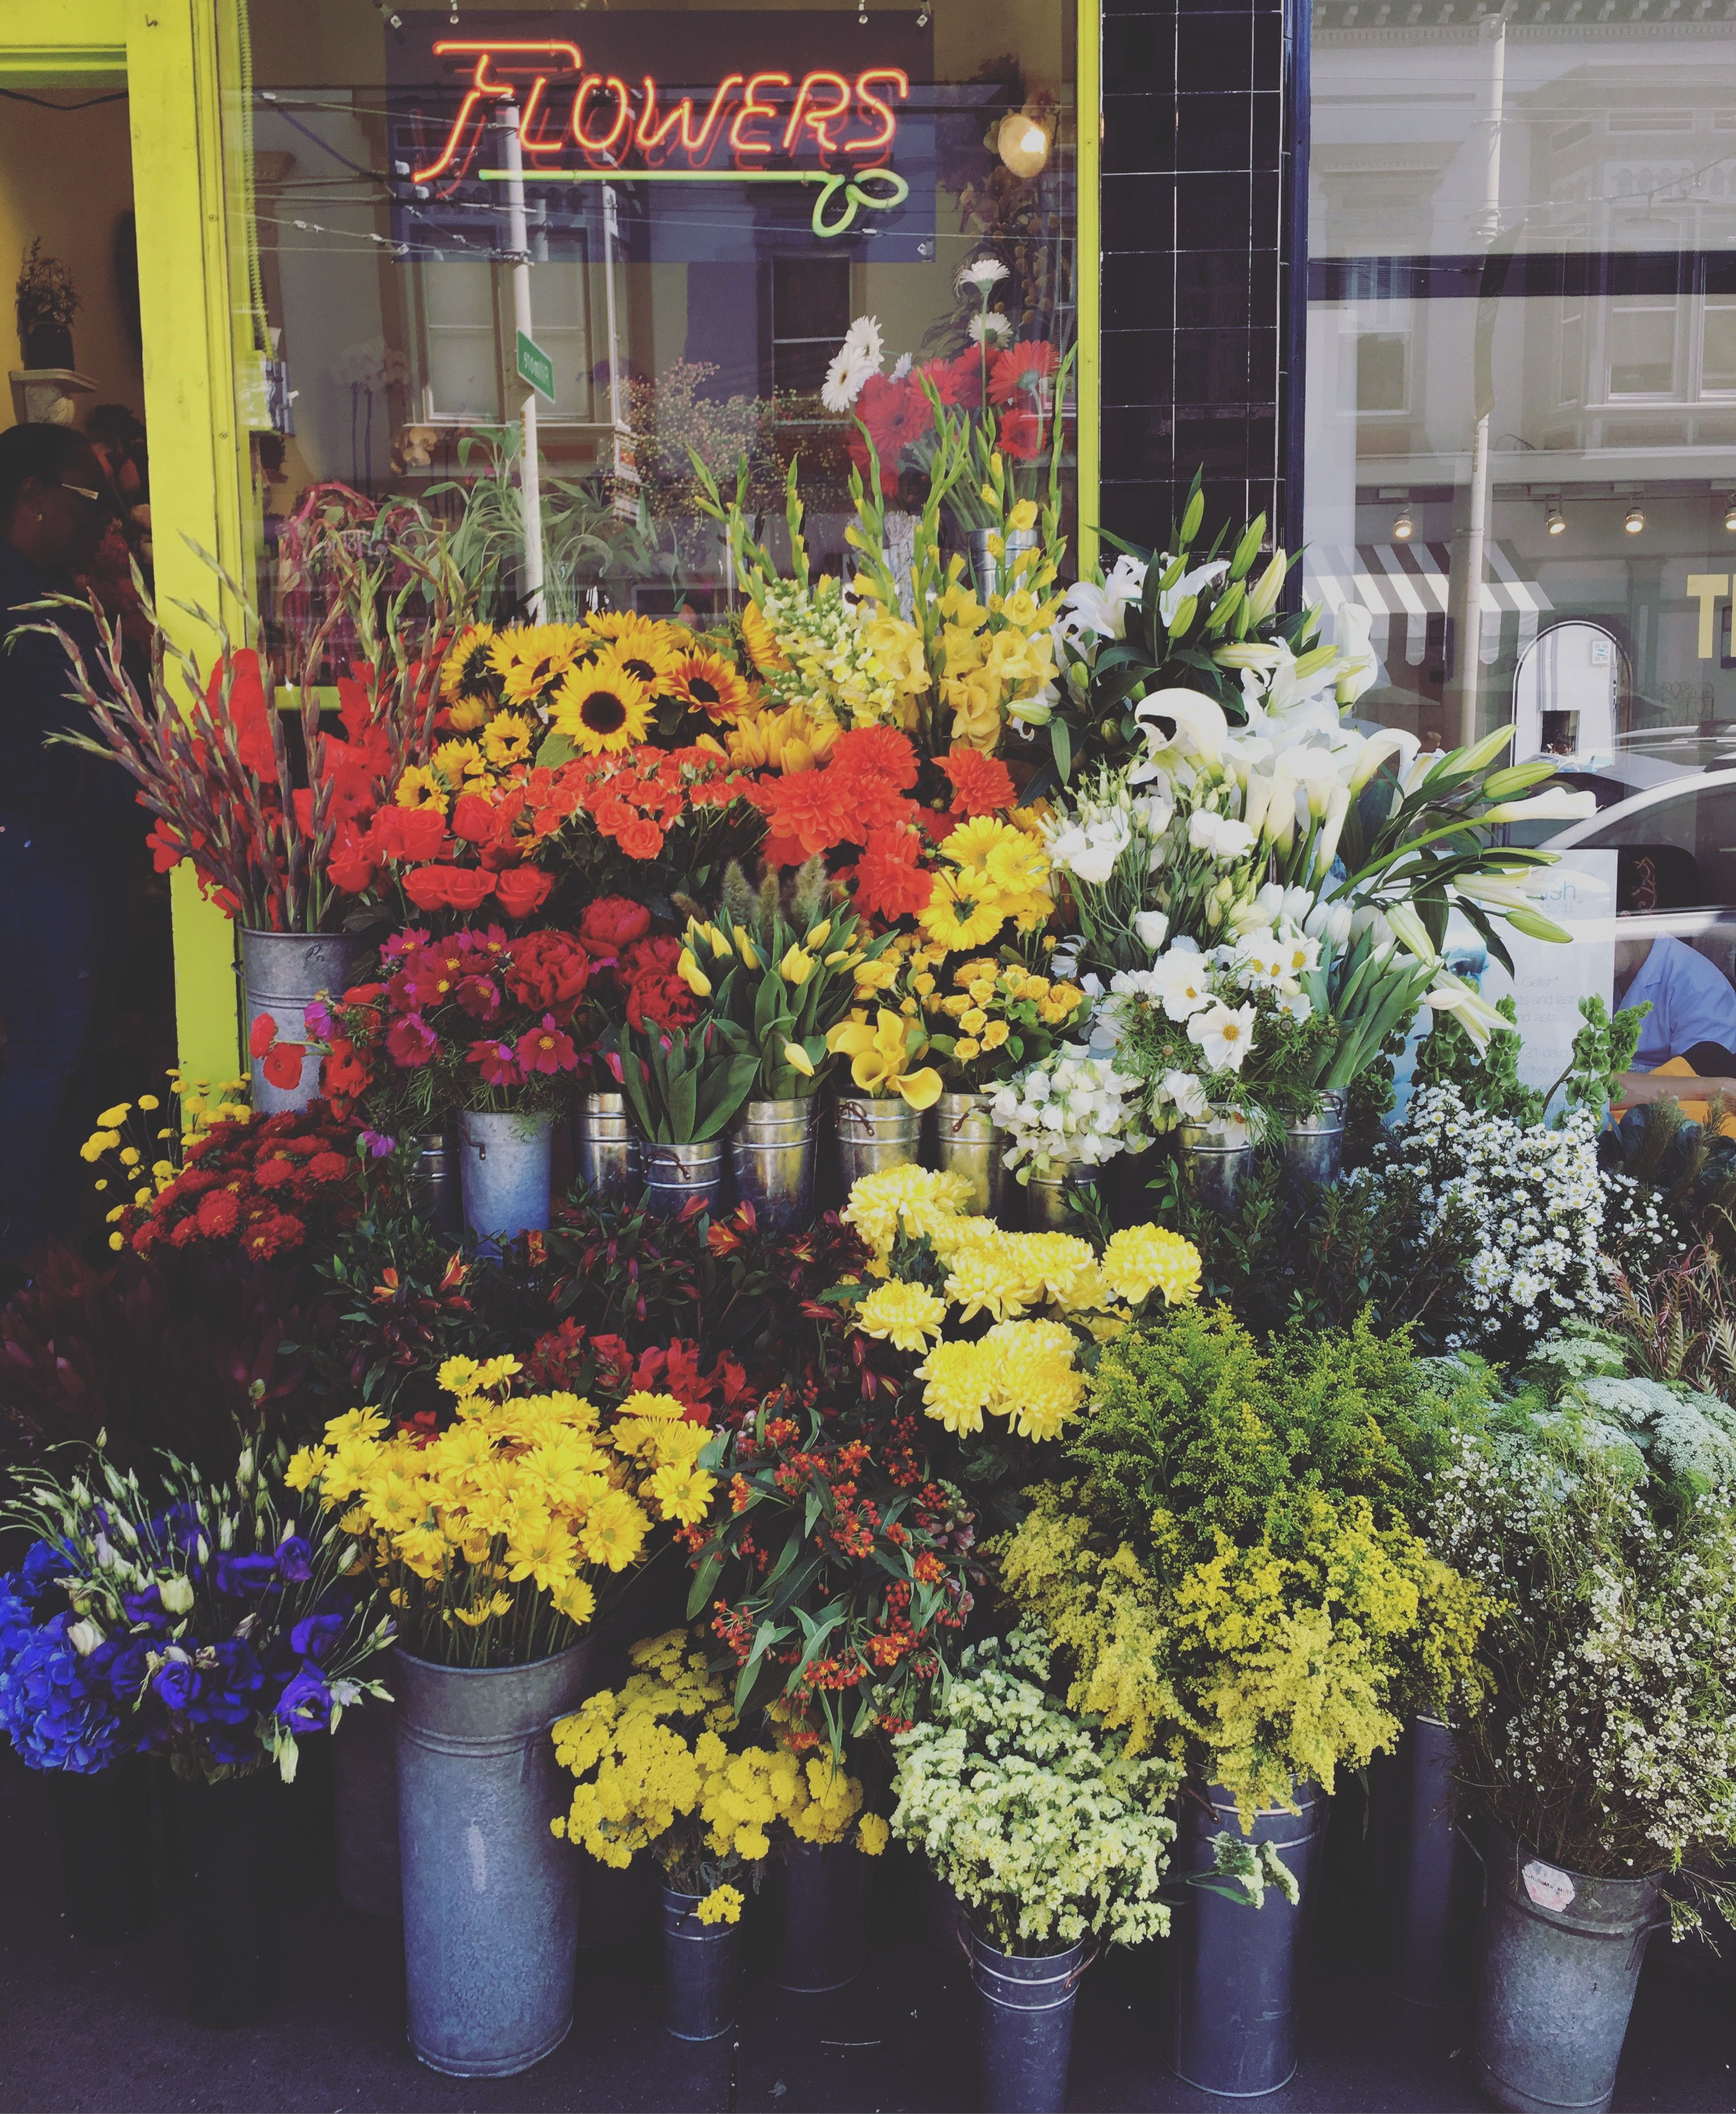 Stop and smell the roses and peonies and sunflowers at san stop and smell the roses and peonies and sunflowers at san franciscos colorful local izmirmasajfo